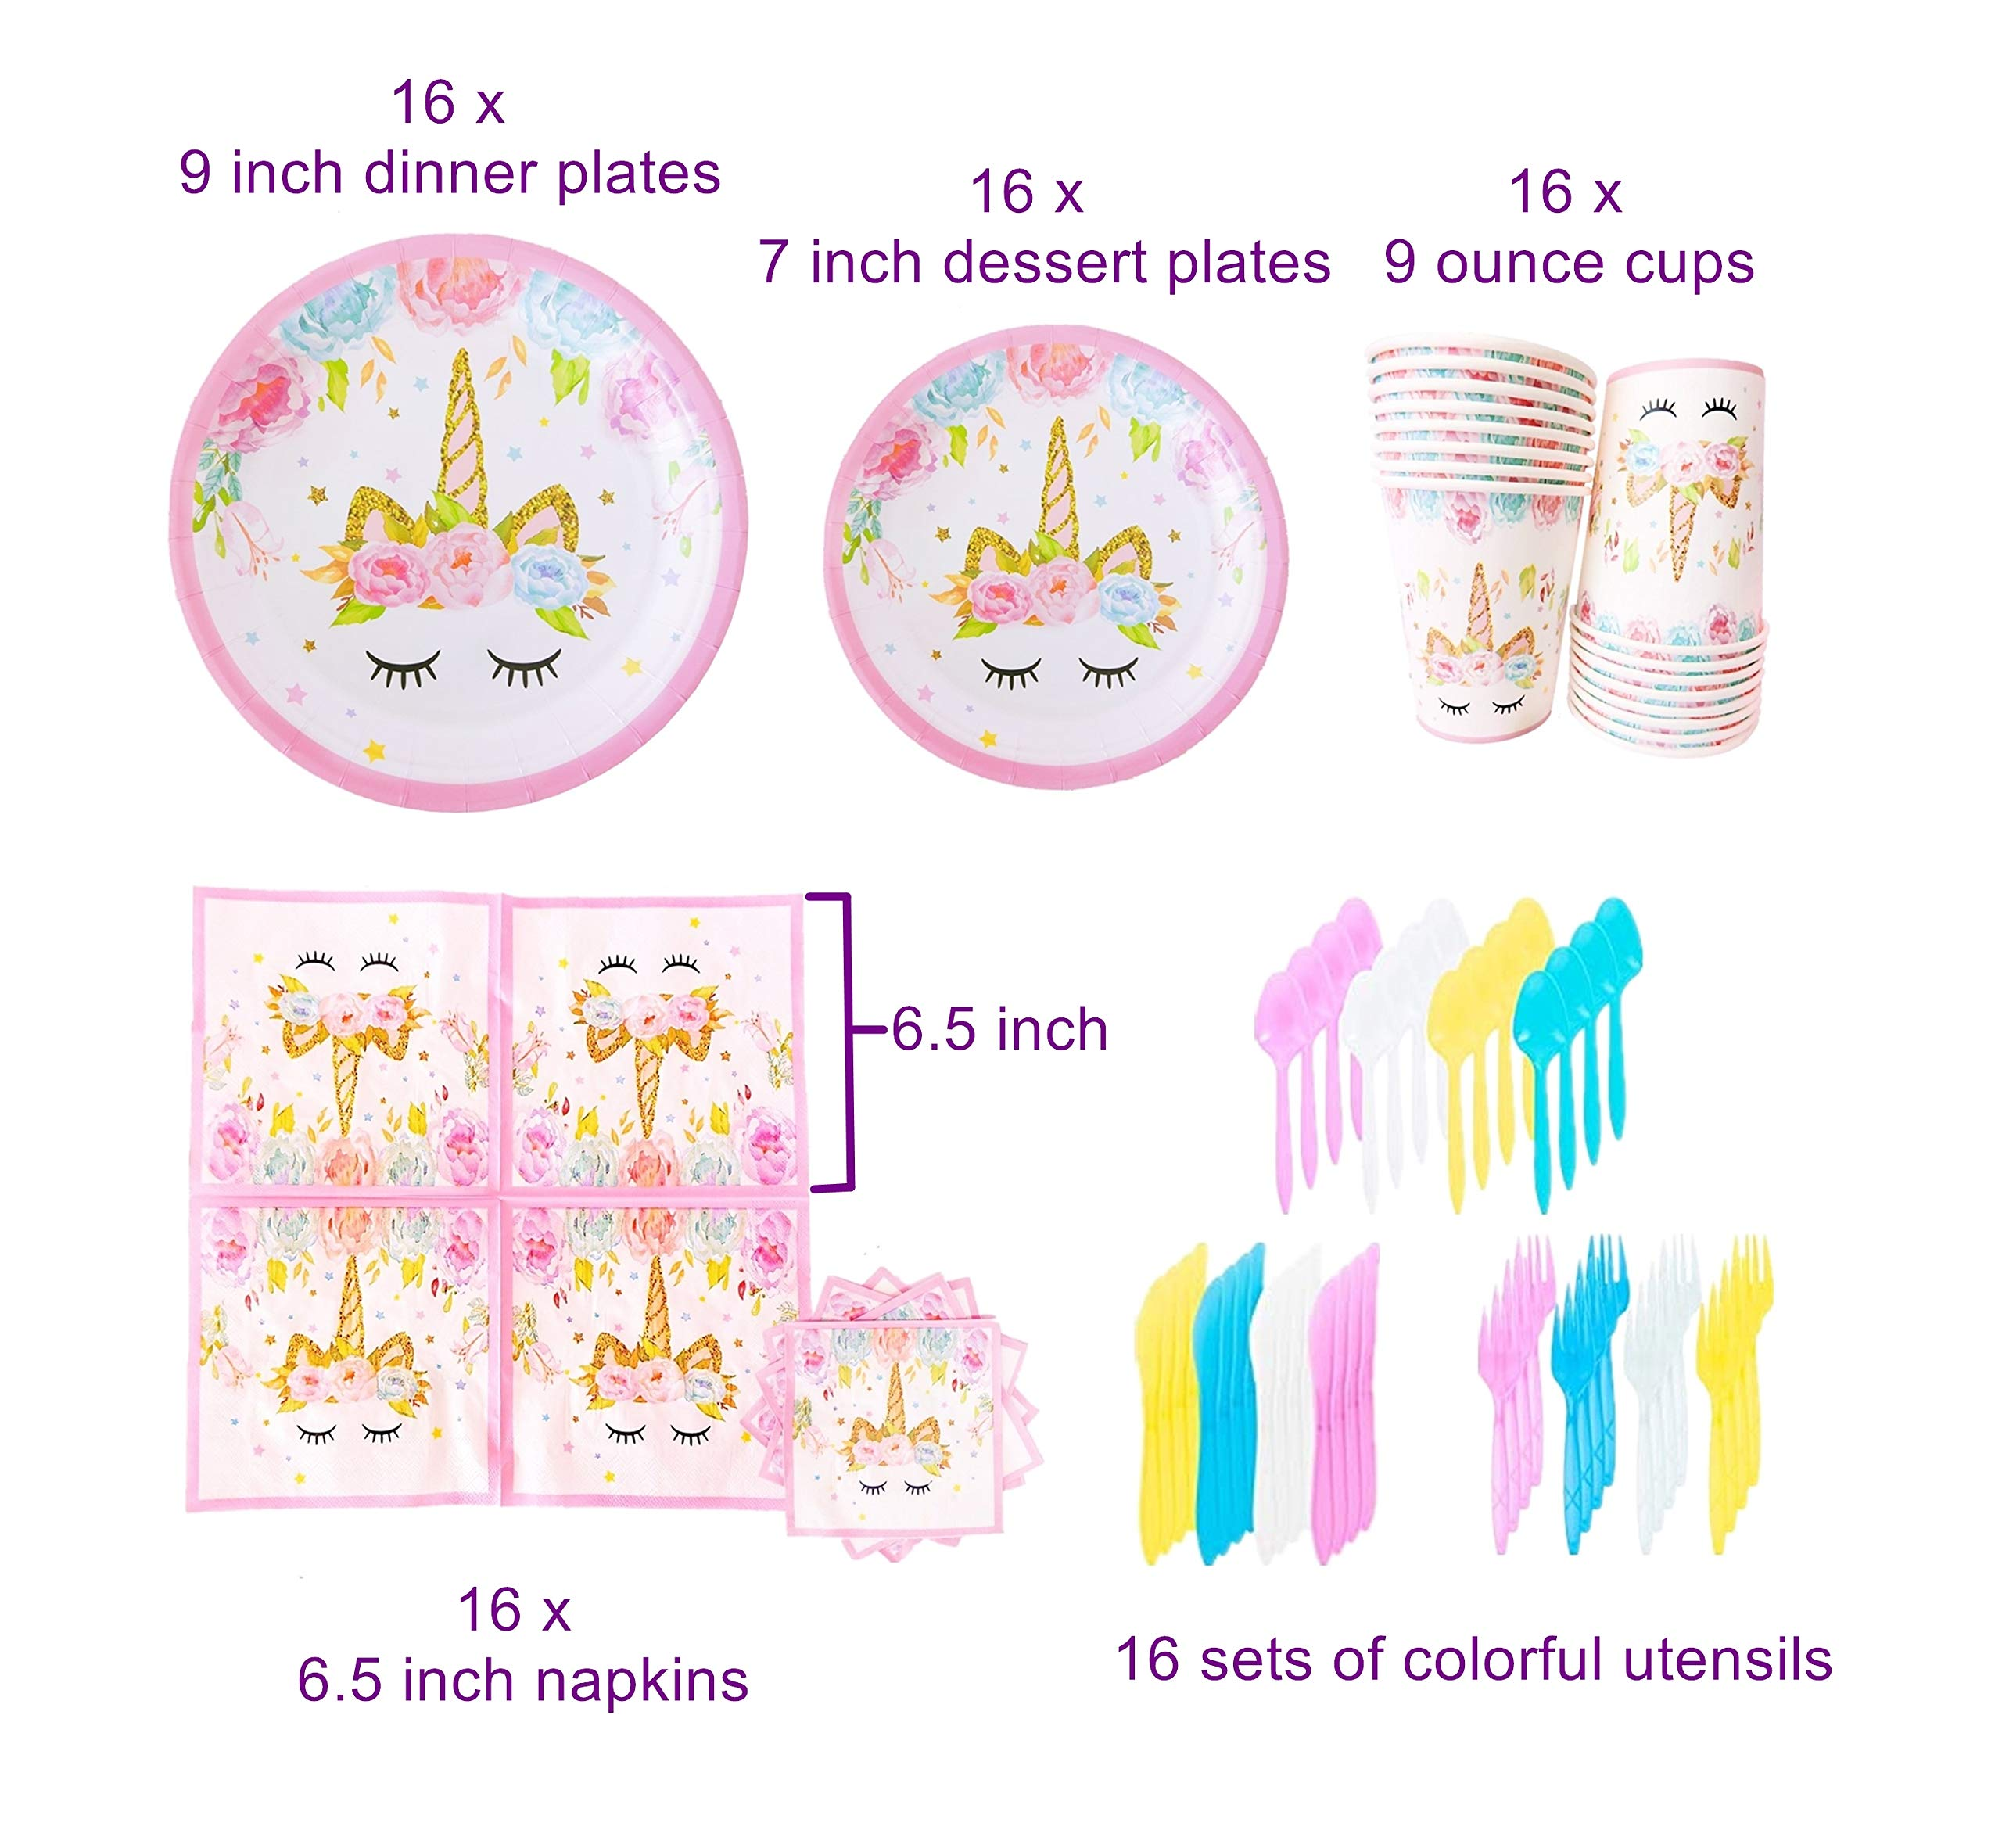 Unicorn Party Supplies Set with BONUS Glittery Unicorn Headband and 30 Balloons | 145 Piece Disposable Unicorn Themed… 4